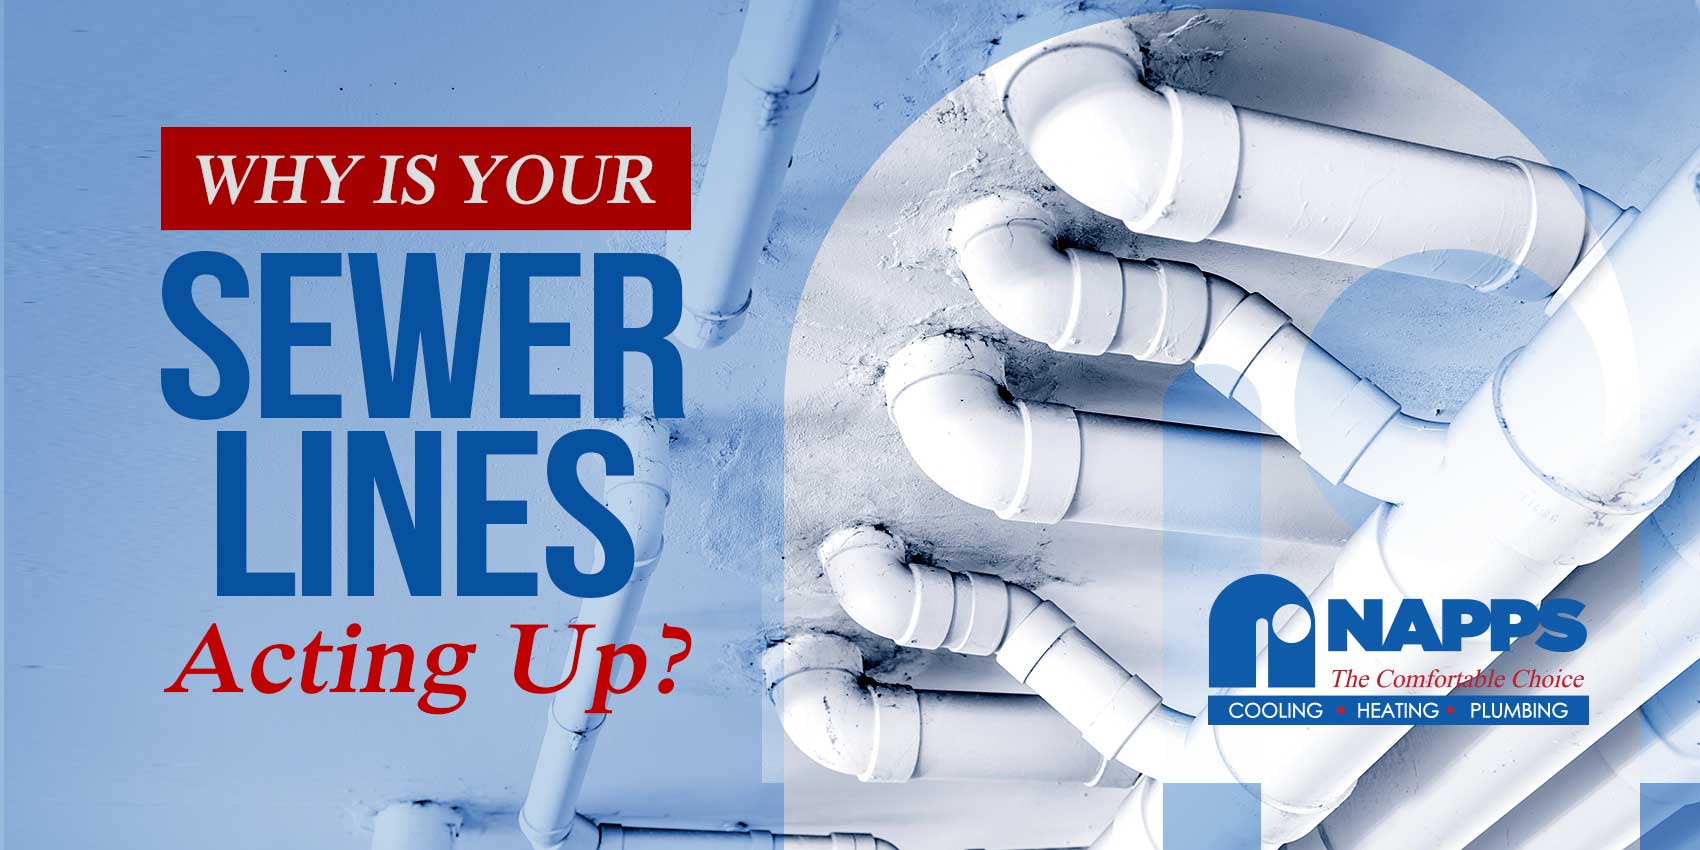 Why Is Your Sewer Lines Acting Up?